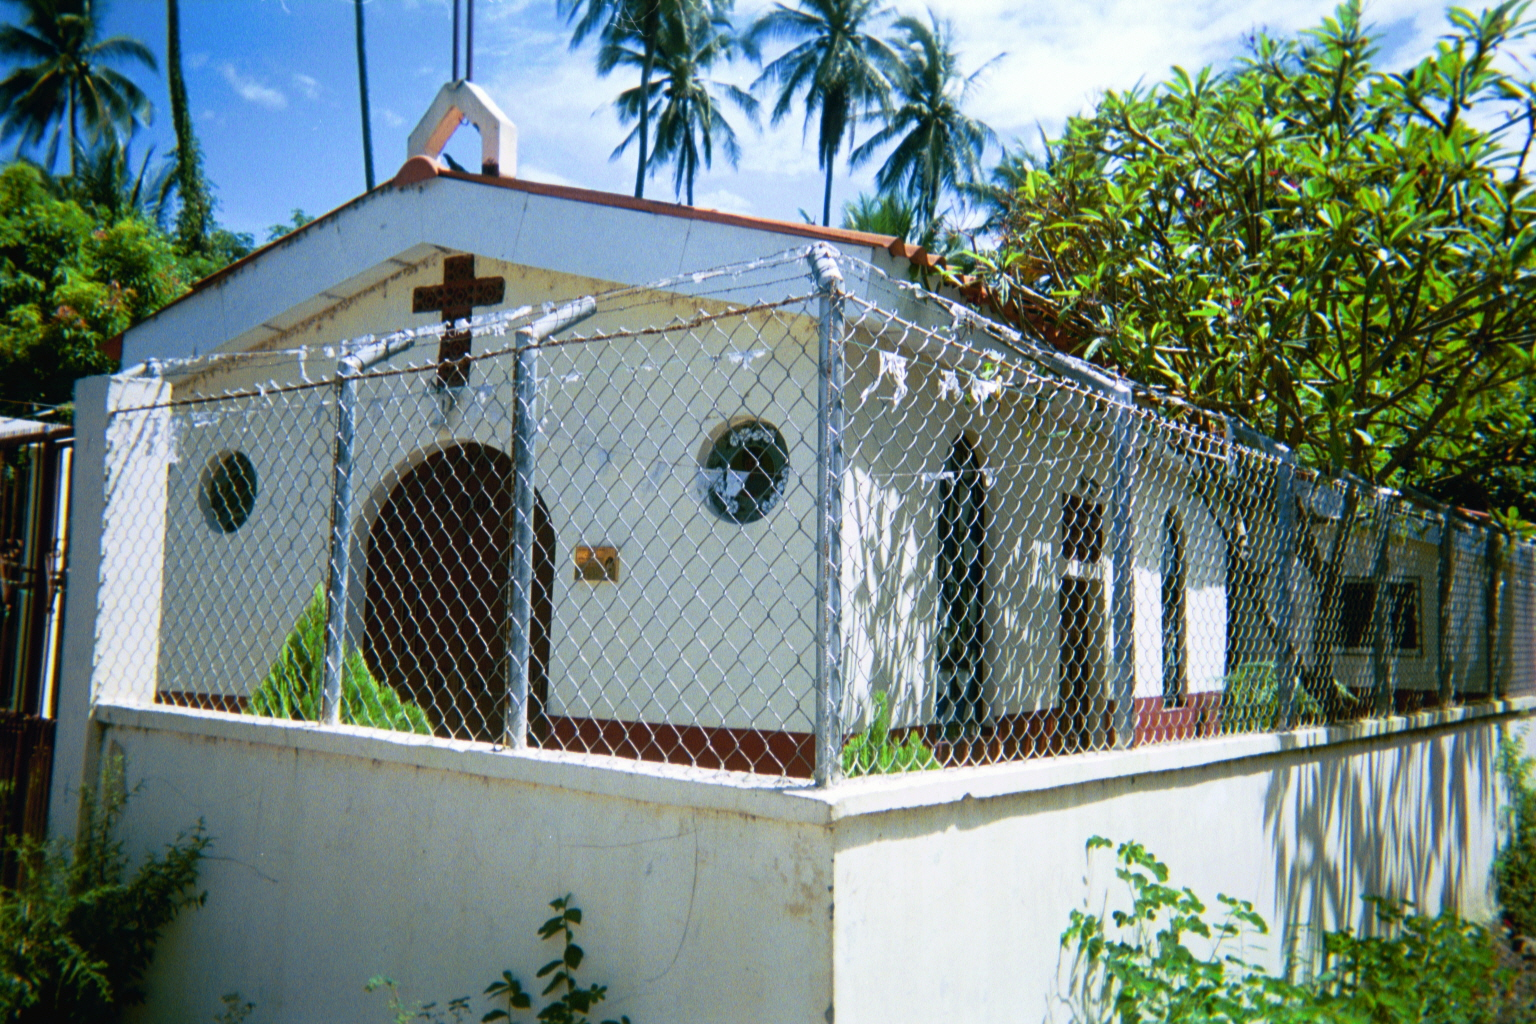 Fenced in for Home design el salvador